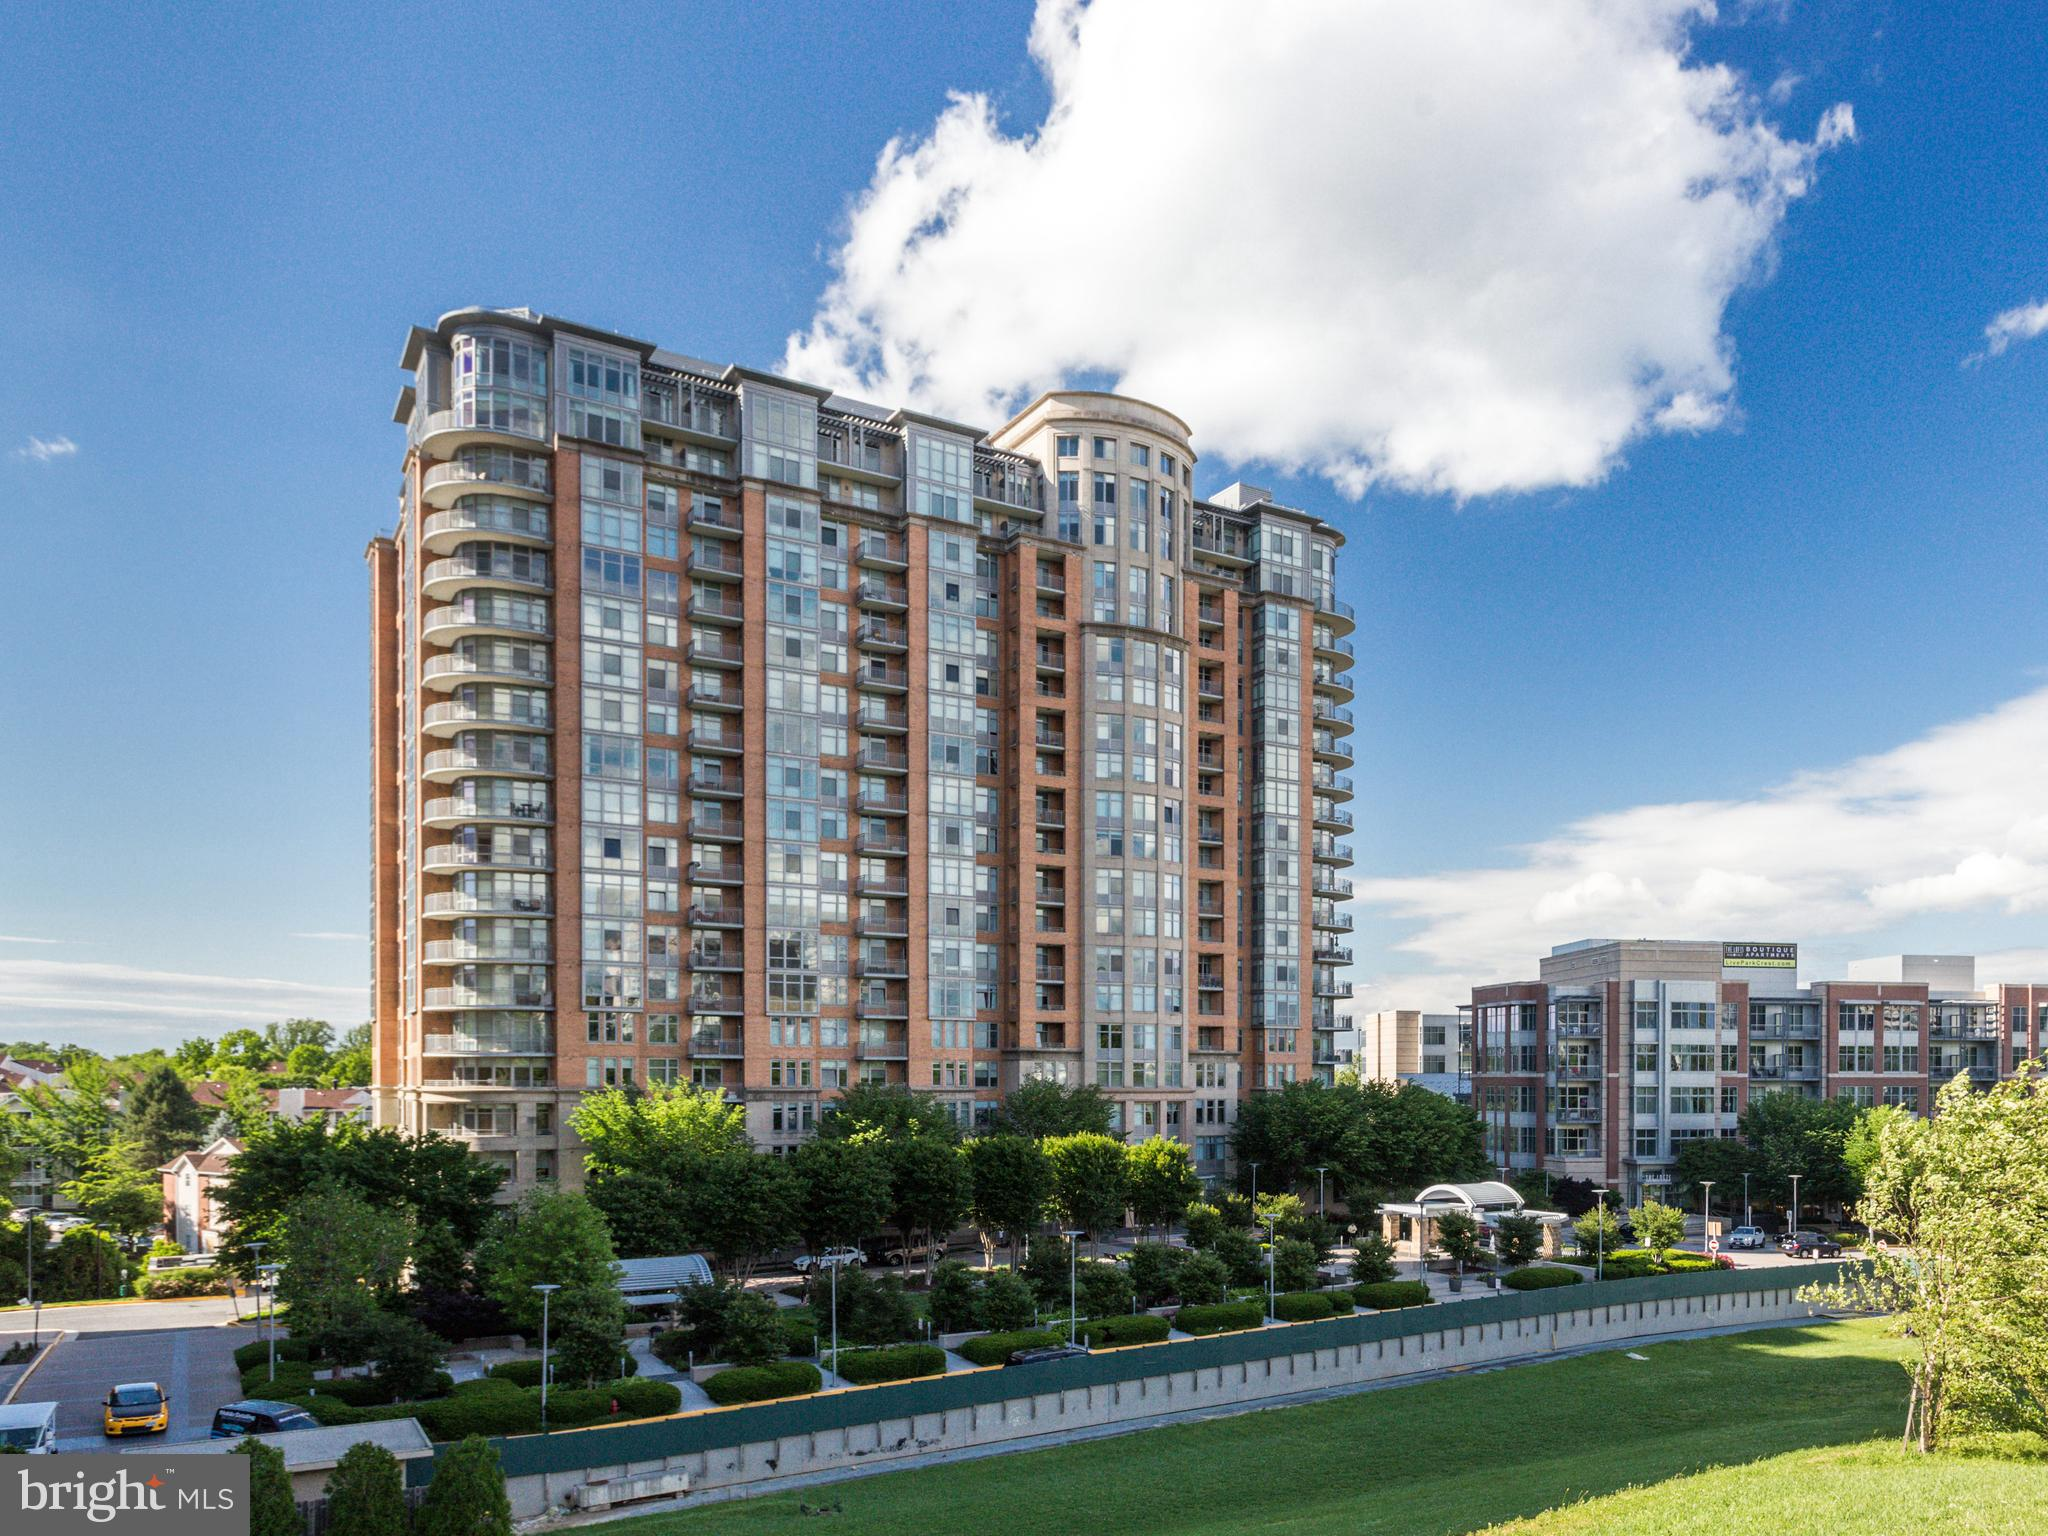 OPEN HOUSE SUNDAY - FEBRUARY 24TH FROM 2 PM TO 4 PM.  For Sale in luxury One Park Crest condominium:  A Large, East oriented Corner Unit with panoramic views.  Unit has 1,612 square feet of indoor space, plus a wide circular Wraparound Balcony.  The Two Master Bedrooms have attached Full Baths and large Walk-in Closets.  Entry Foyer has Coats Closet, Den and Half-Bath.  Living and Dining areas have Floor to Ceiling windows.  The Sr. Master Bedroom also has Floor to Ceiling windows!  Sr. Master Bathroom has Dual Sink Granite Countertop, Marble Floor, Large Shower and Soaking Tub!  2nd Master Bathroom has Shower and Granite Sink Countertop.  GE Stainless Steel Appliances and Granite Countertops in Kitchen.  Unit enjoys abundant morning and day long sunshine with nice views of the expanding Tysons skyline from Capital One to The Boro to the East and South, and of Sugarloaf mountain and Maryland to the North.  The Wraparound Balcony is great for outdoor enjoyment in good weather.  Unit conveys with TWO Parking Spaces adjacent to each other on P2 level.  Parking Space numbers P2-116 and P2-117.  One Park Crest has an ornate Lobby and common area on first floor that include a meeting room, exercise room, courtyard and two guest suites available to guests of building residents for a nightly rate.  The amenities continue on 18th floor with a swanky Club Room, Roof Top Deck and Pool - That altogether offer sweeping views of the growing Tysons City skyline and of the Shenandoah mountains with gorgeous year-round sunsets.  The Park Crest Master Association has 24x7 Harris Teeter grocery store and Starbucks Coffee shop immediately next door.  One Park Crest is 0.9 miles from Tysons Corner Silver metro rail station.  Investor Buyer:  Monthly rent can exceed $4,200 and is stable due to high demand in greater Tysons for such large unit rentals.  Overall, a great opportunity to own 1,612 sq. ft. on 7th floor of an iconic luxury high rise in the heart of Tysons for a very reasonable